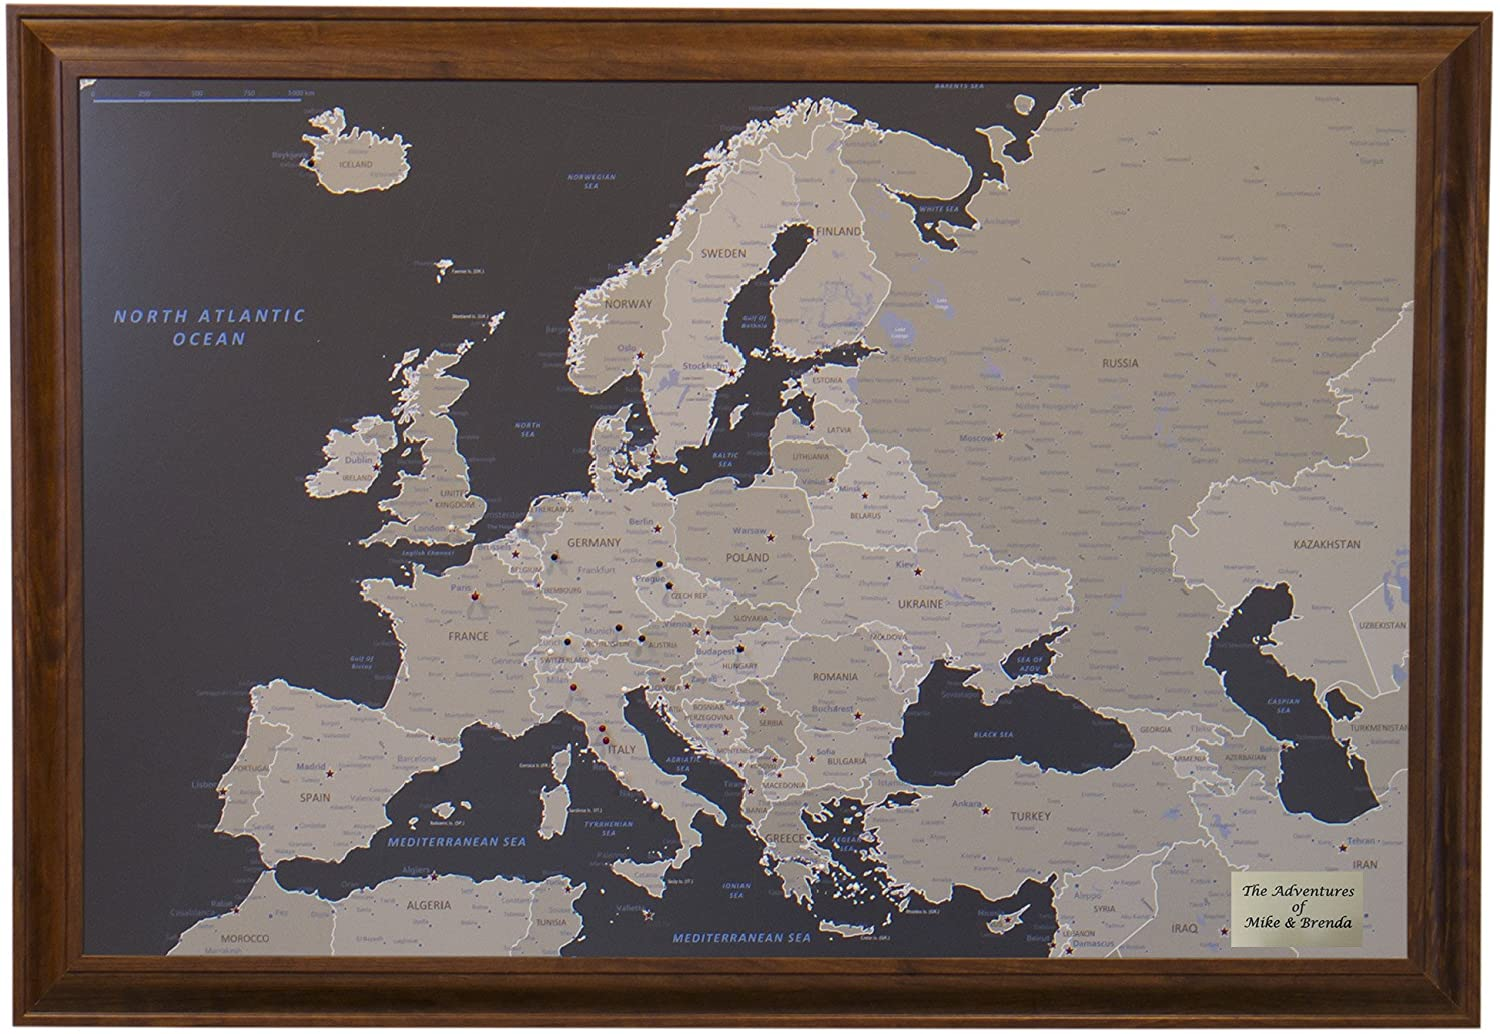 Push Pin Travel Maps Personalized Earth Toned Europe with Brown Frame and Pins - 27.5 inches x 39.5 inches